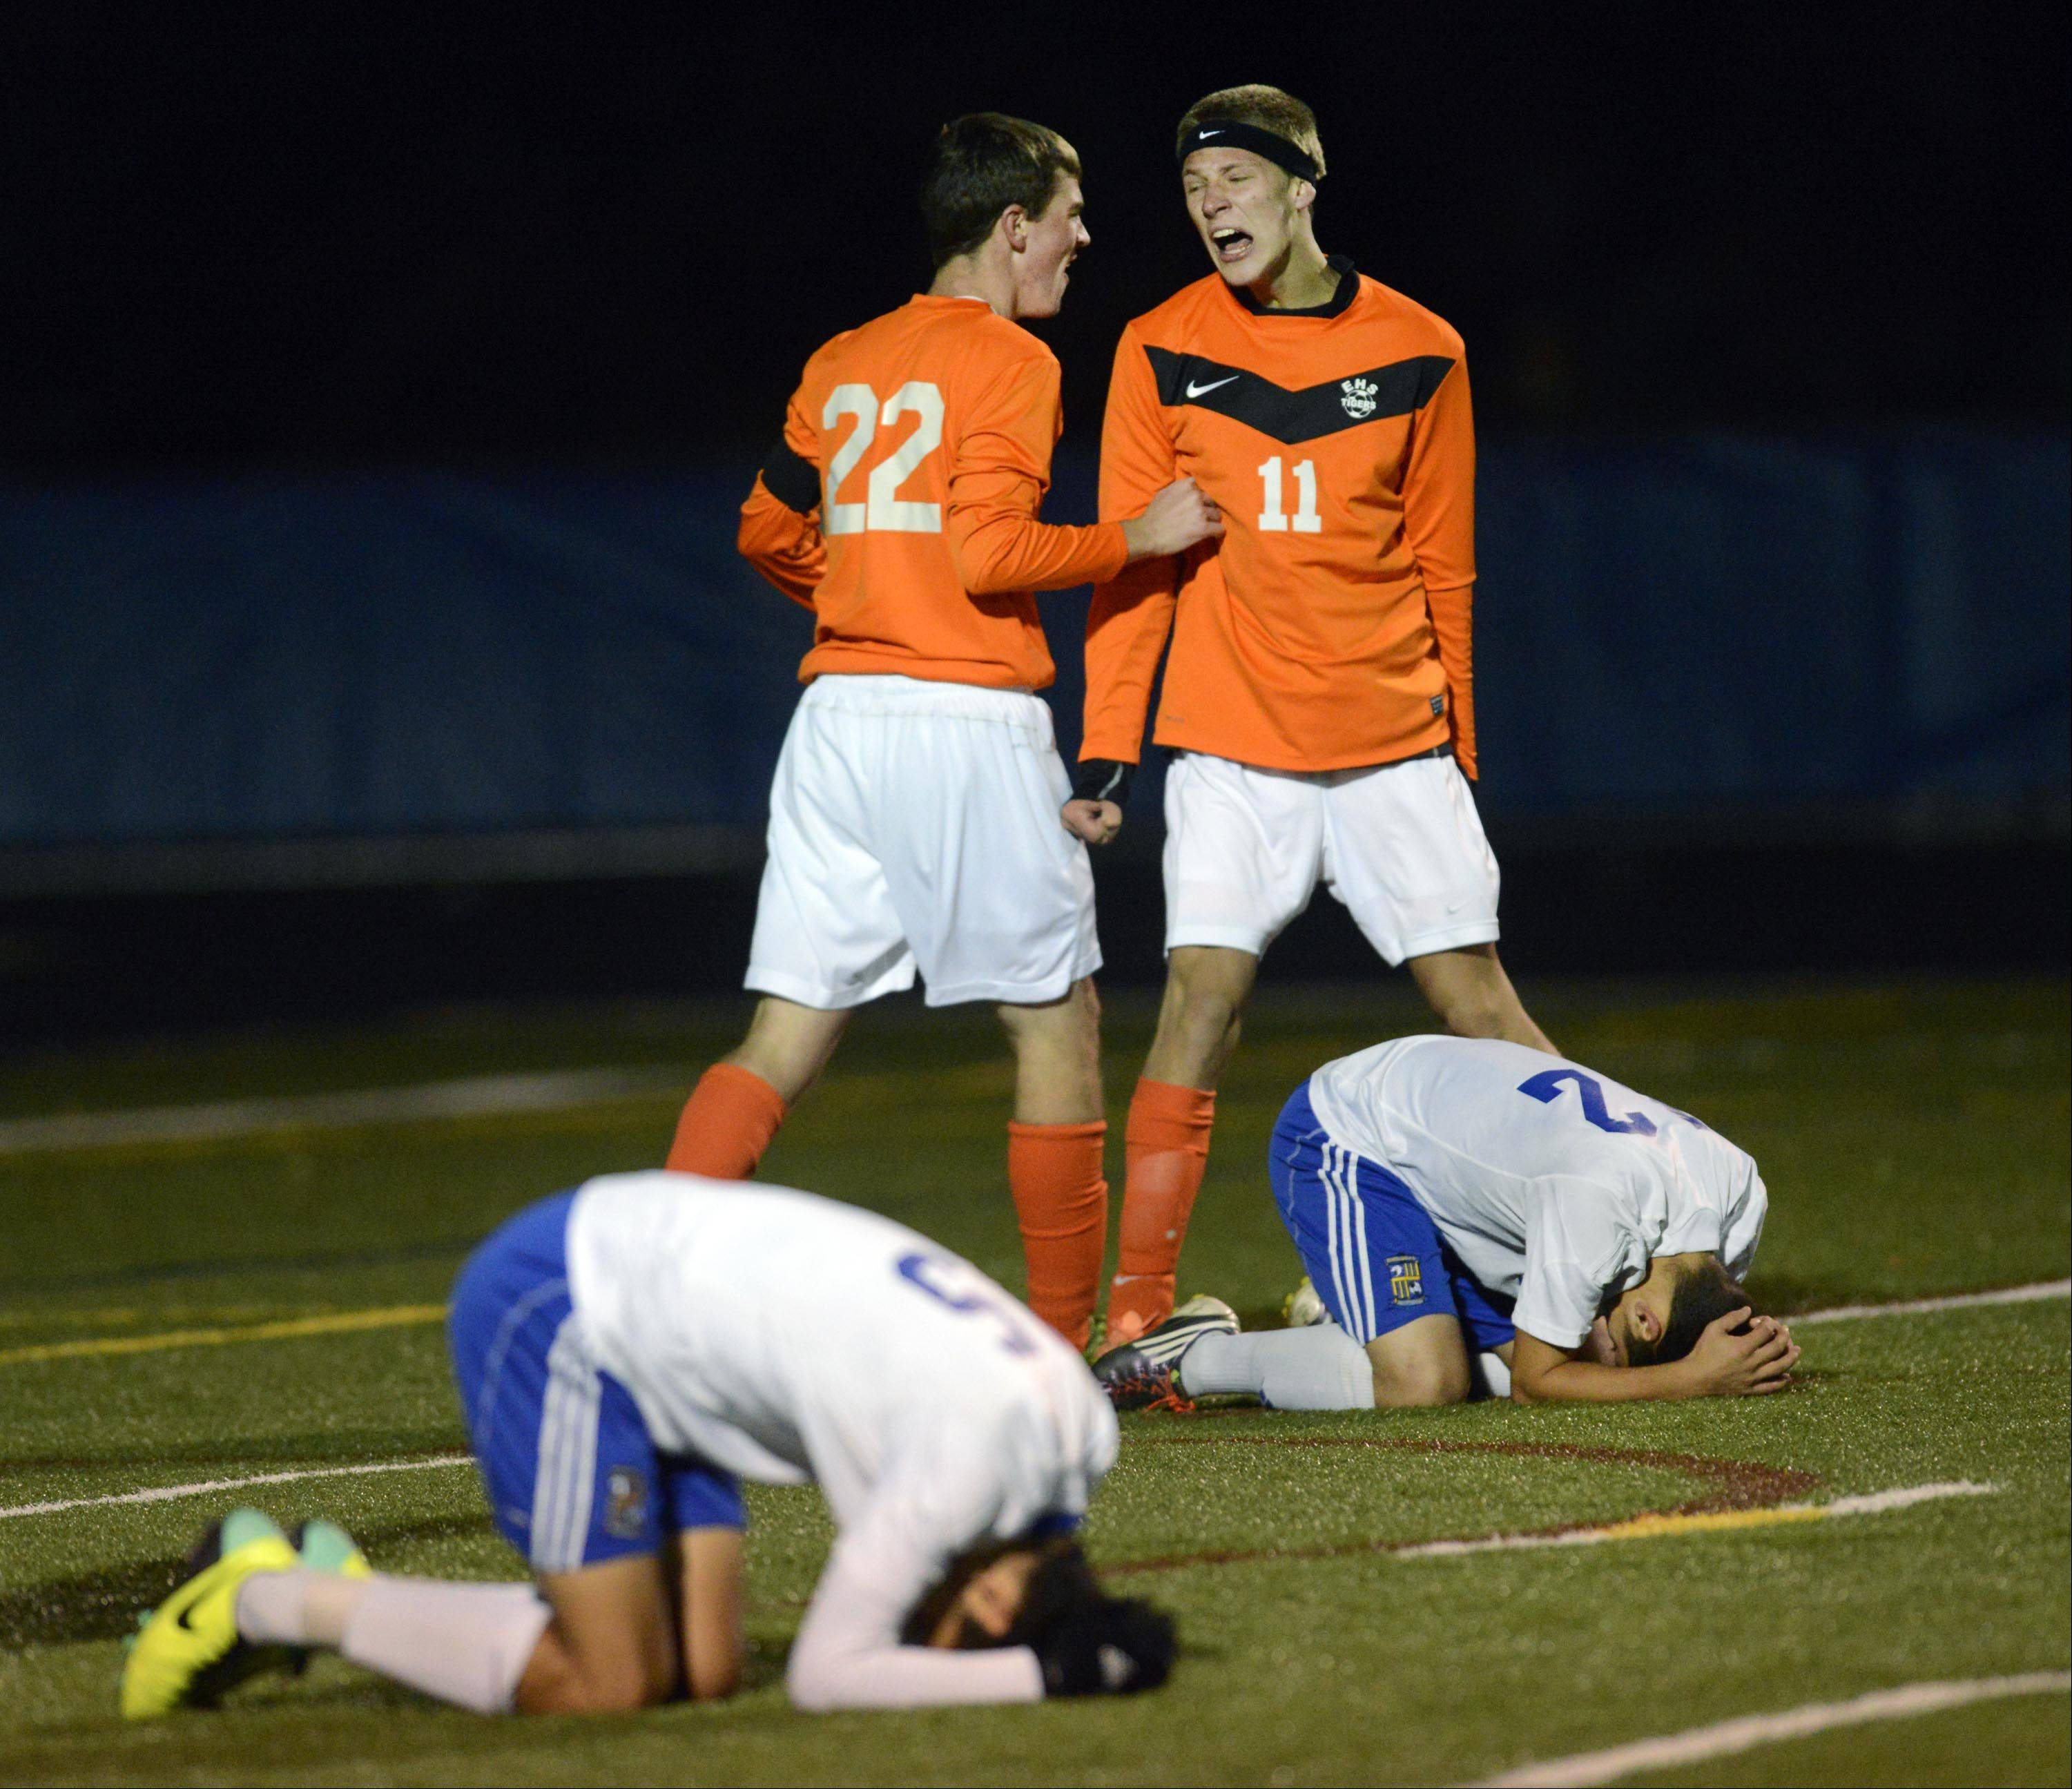 John Starks/jstarks@dailyherald.com Wheeling's Michael hernandez, foreground, and Alfredo Rocha, fall to the turf as Edwardsville's Hayden Hessler and Justin Lowry celebrate their 2-1 victory in the Class 3A soccer state championship game Saturday night in Hoffman Estates.